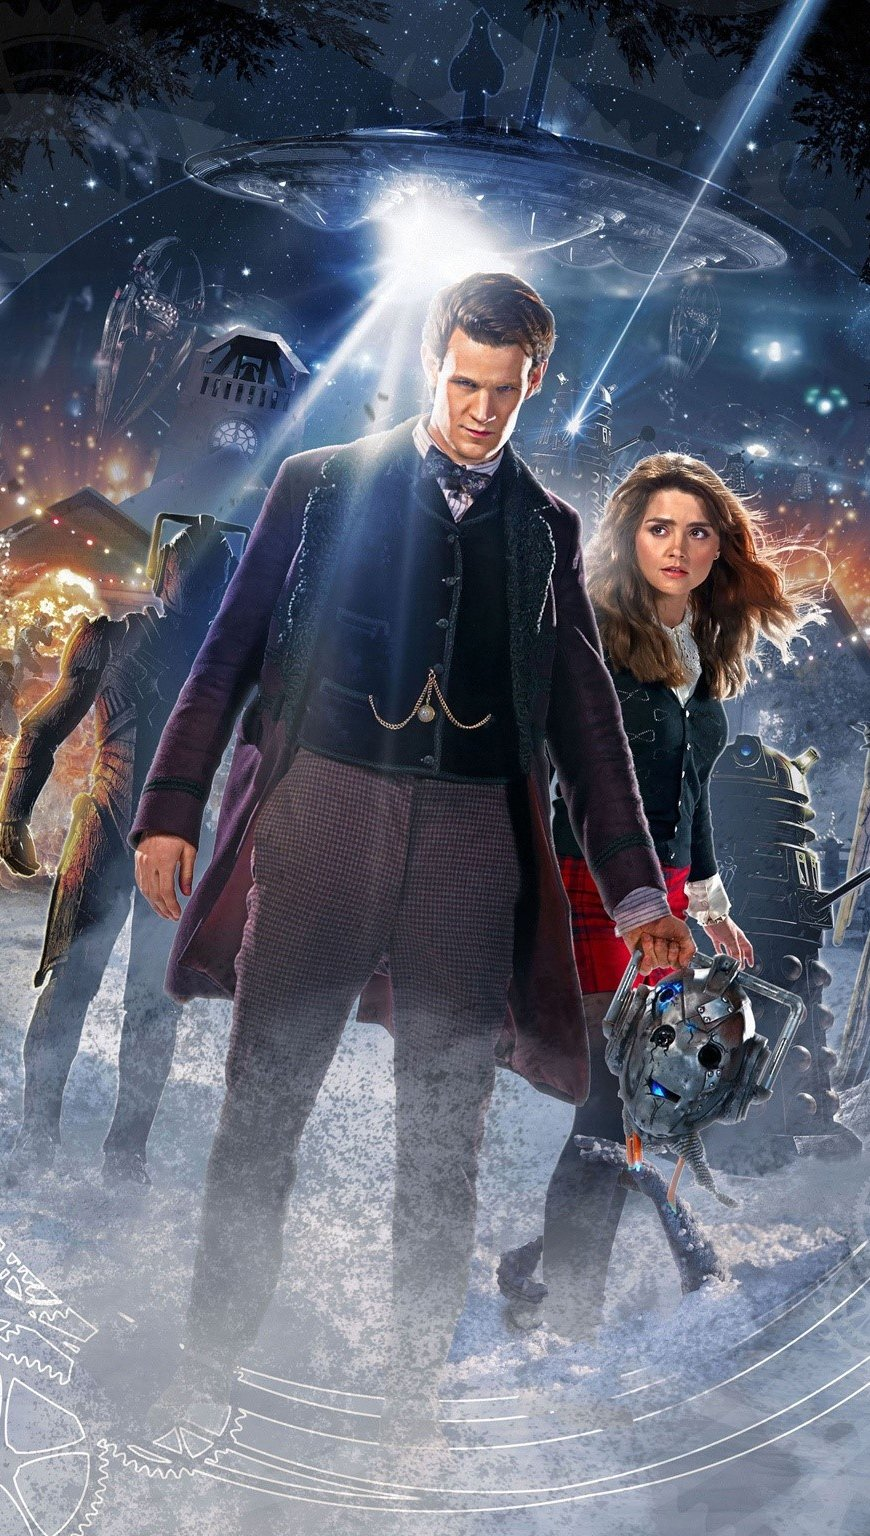 Fondos de pantalla Doctor who Vertical